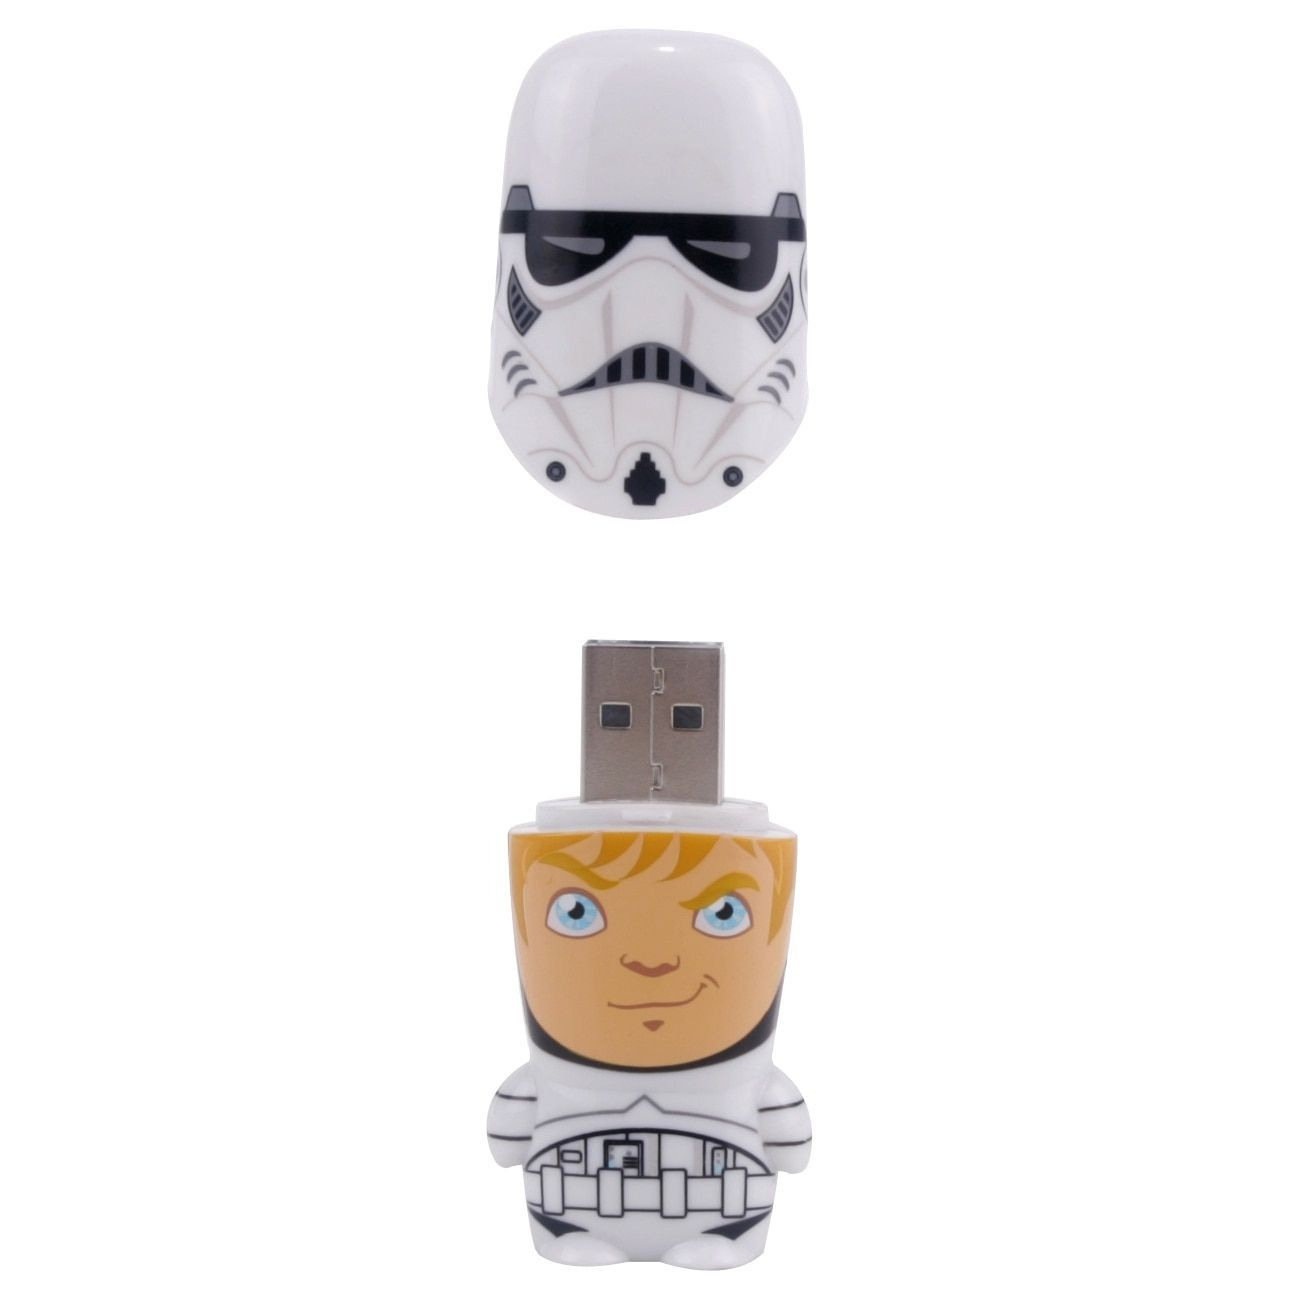 Mimoco 16GB Mimobot USB 2.0 Flash Drive - Stormtrooper Unmasked #Stormtrooper2-16GB